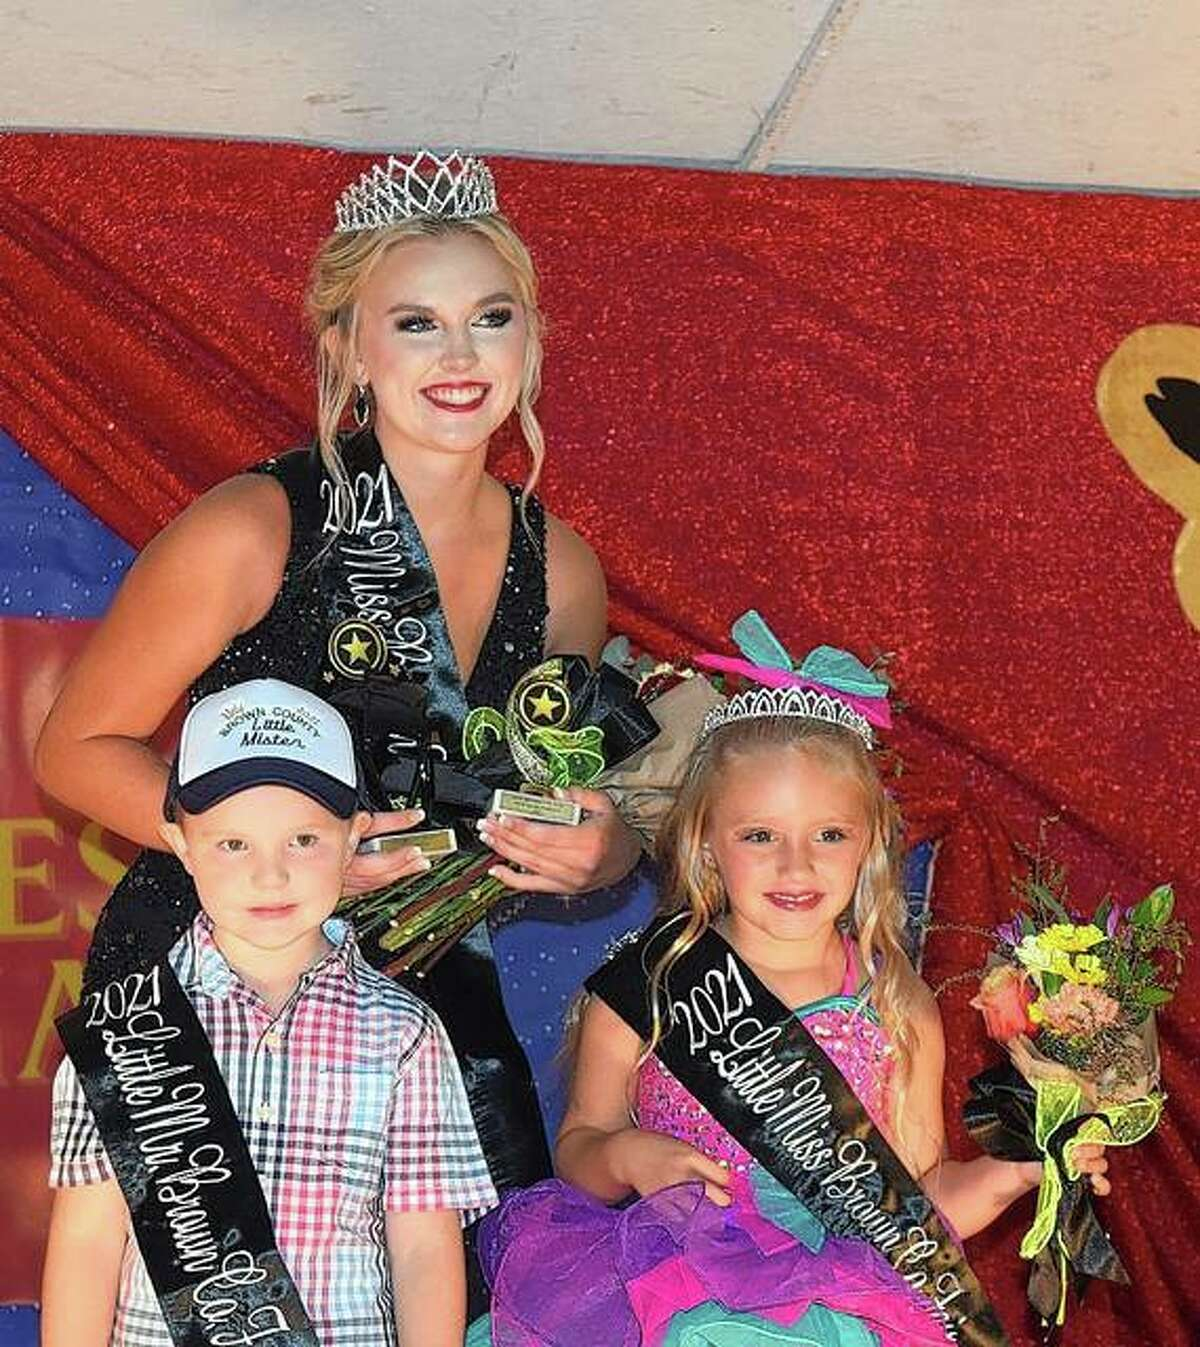 Brown County Fair's 2021 royalty - Miss Brown County Isabelle Koch, Little Mister Henry Barfield and Little Miss McKenna Ormond were crowned Tuesday during a pageant on the fair's opening night.